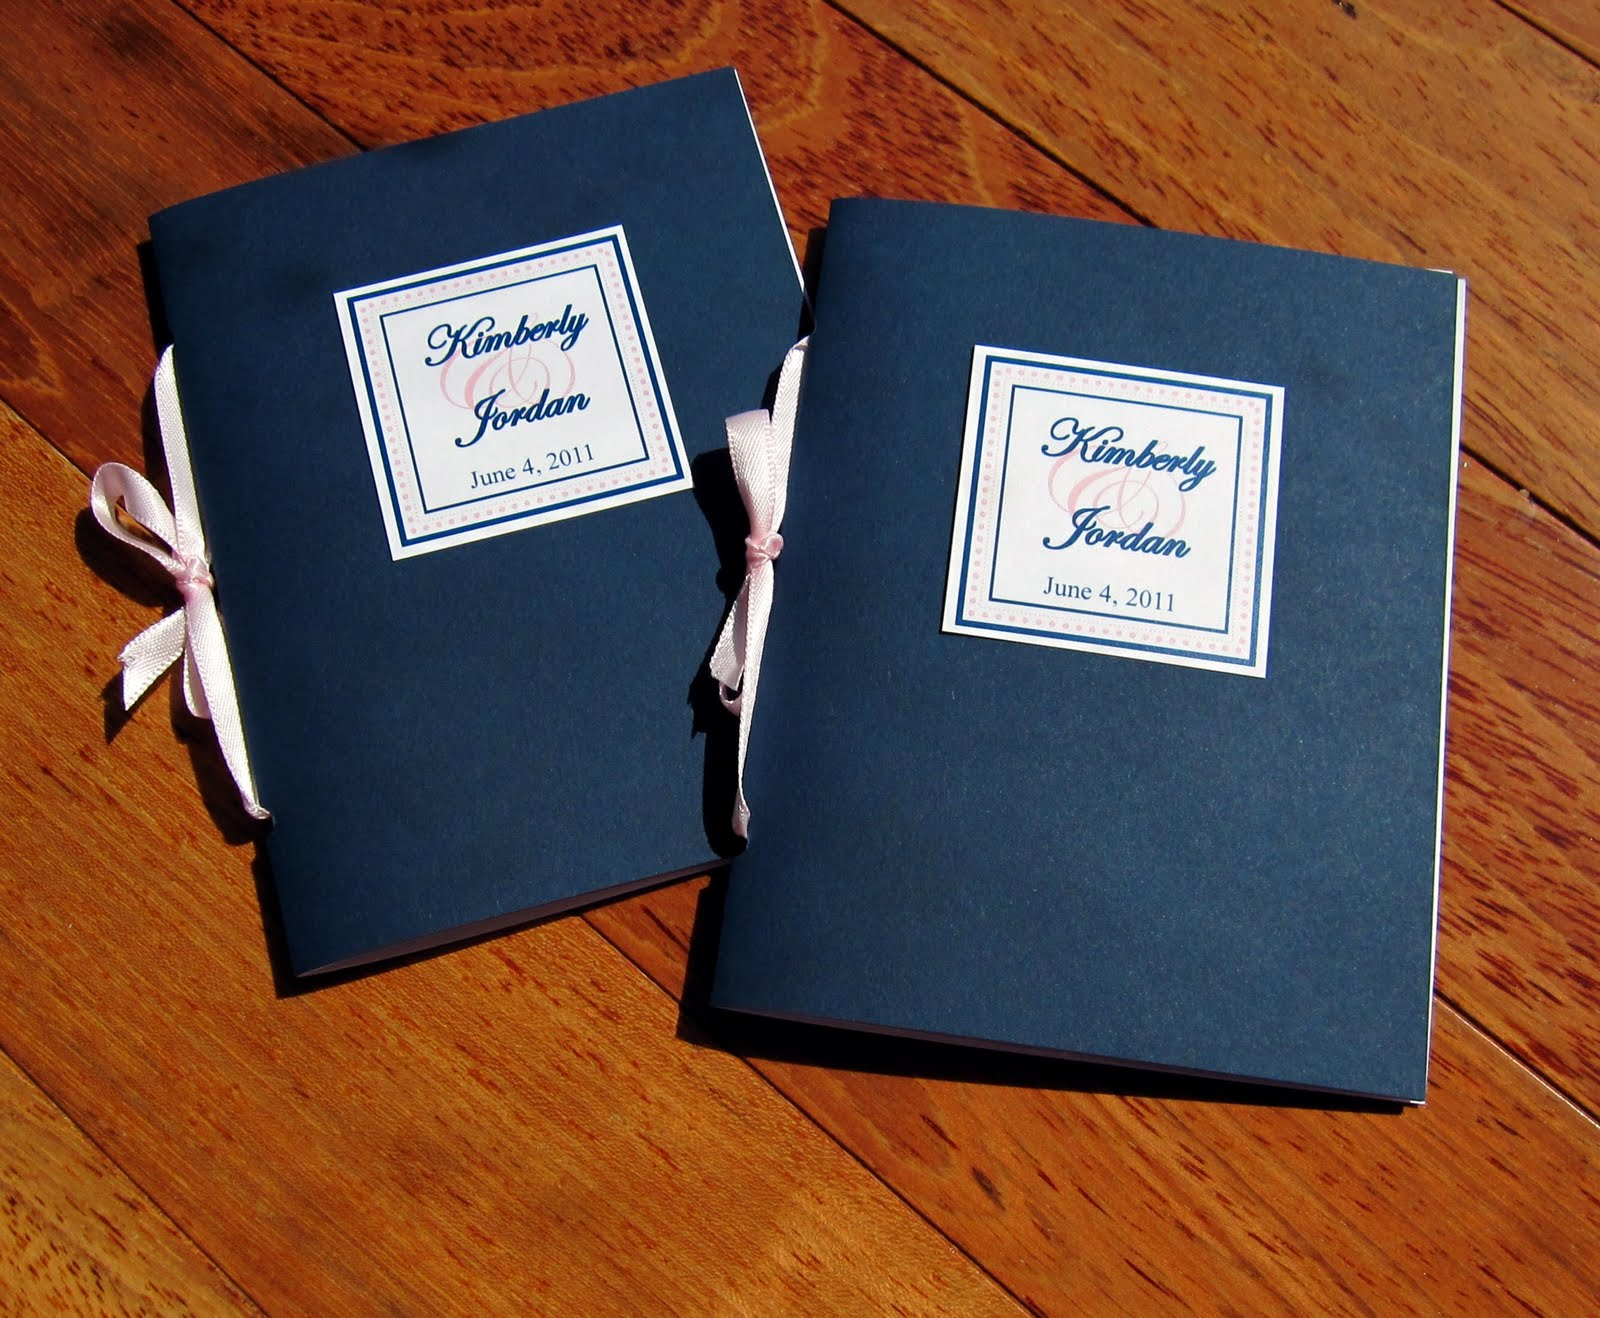 scrapping innovations kim and jordan s wedding program booklets and